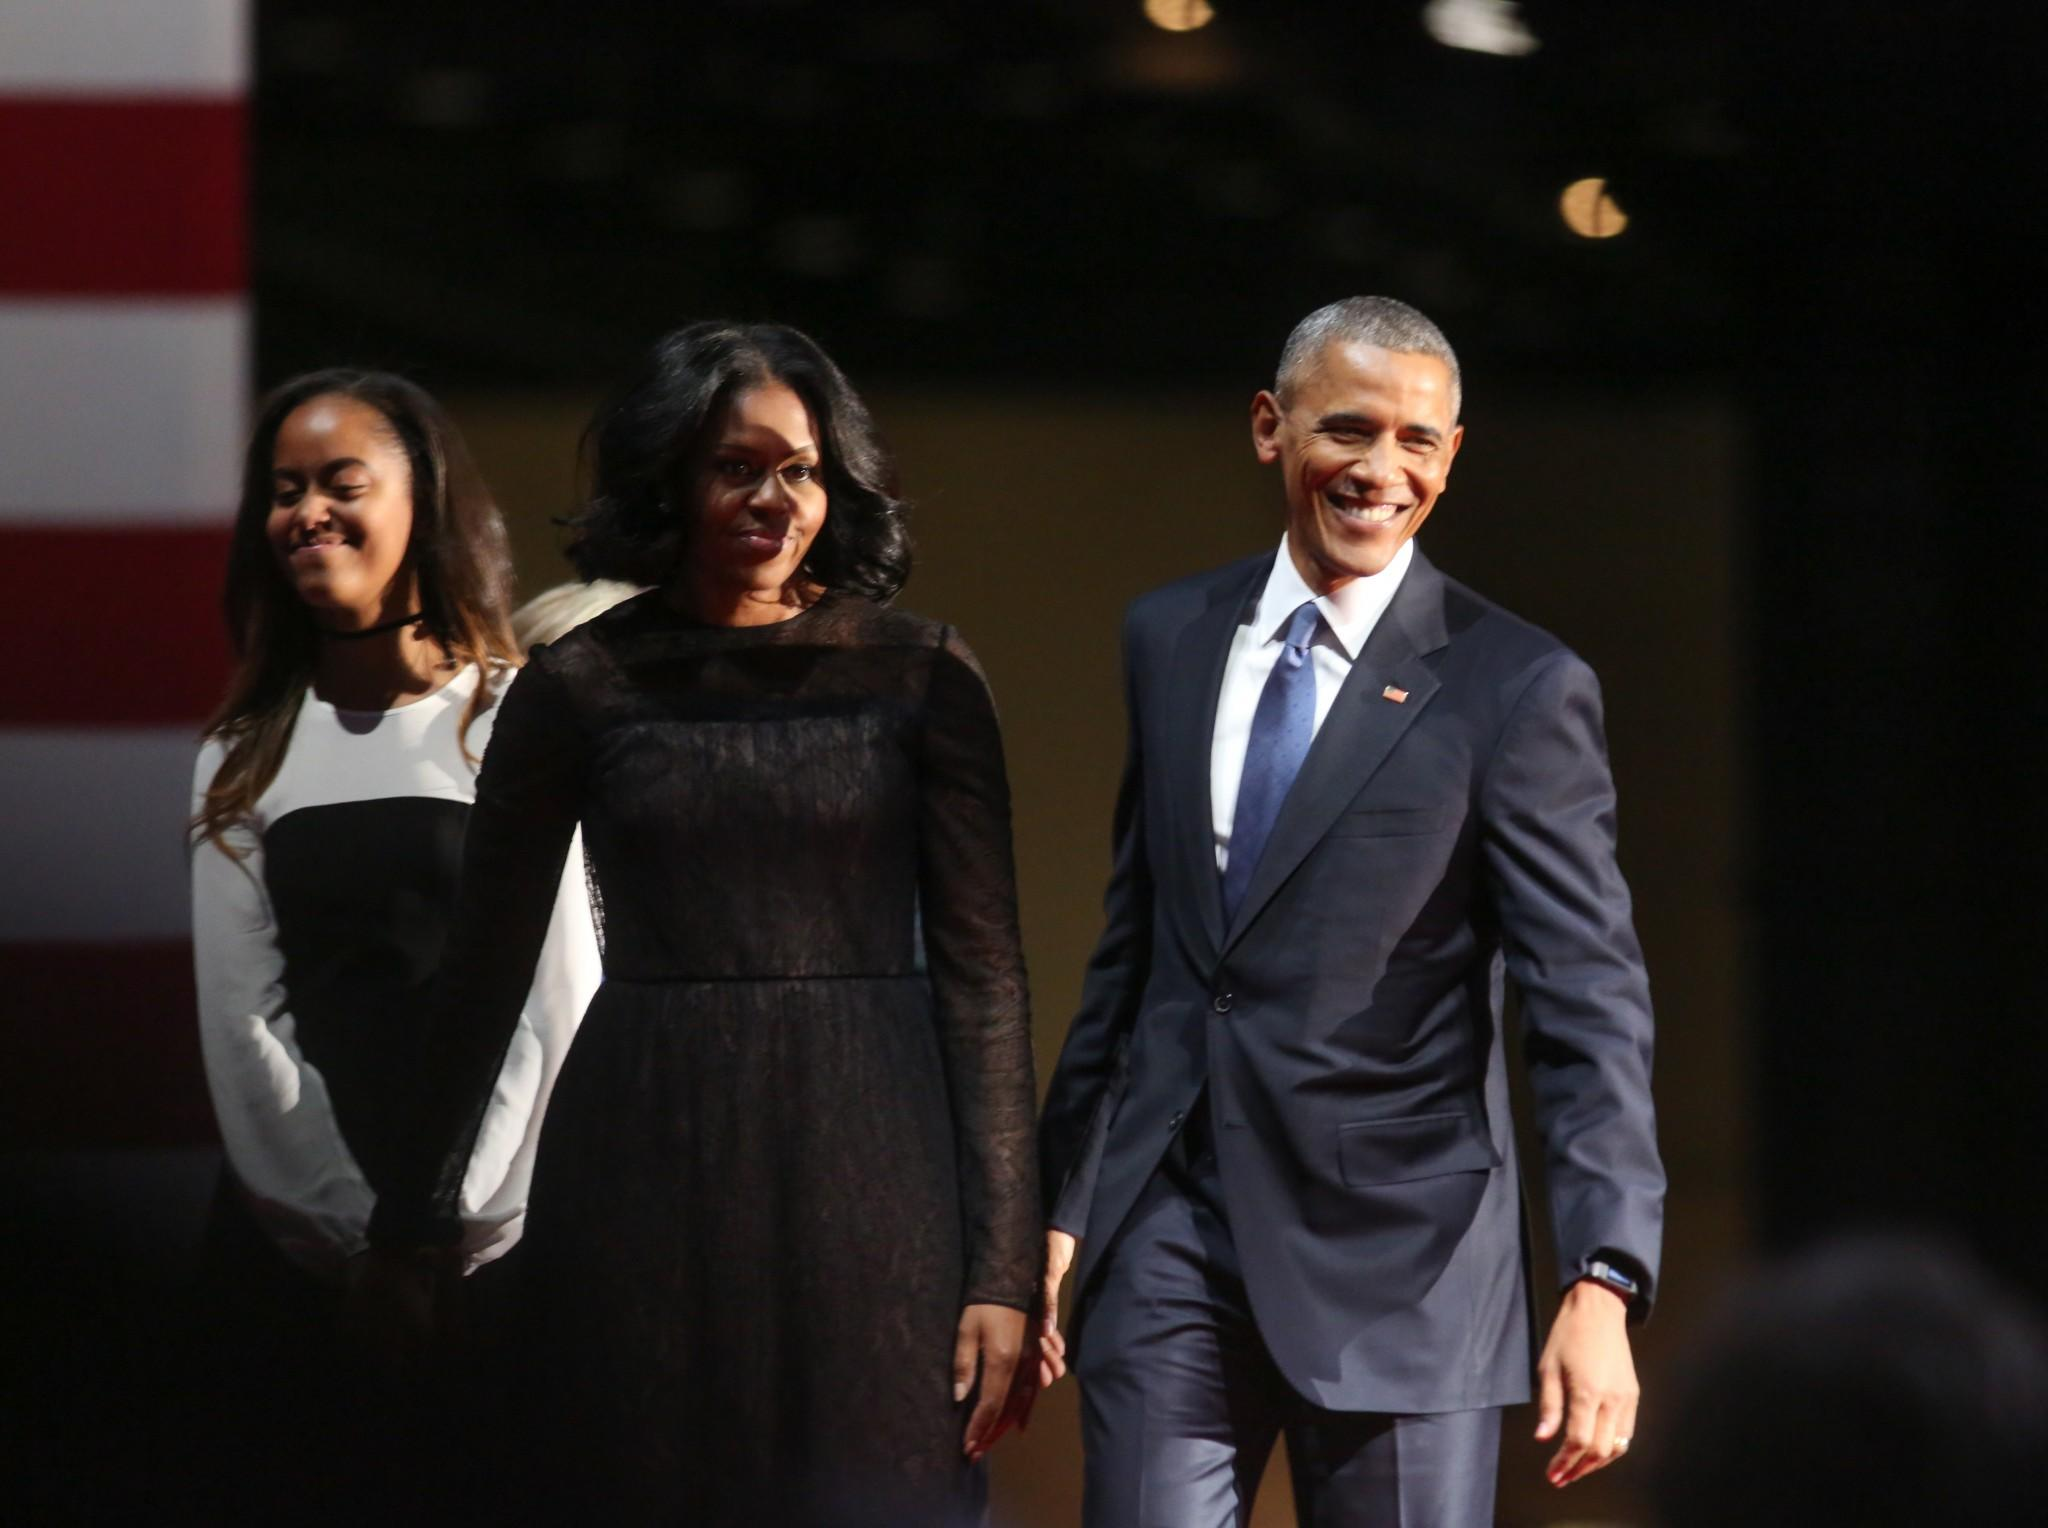 Malia and Michelle Obama join President Barack Obama on stage at his farewell address. (Photo: Getty Images)